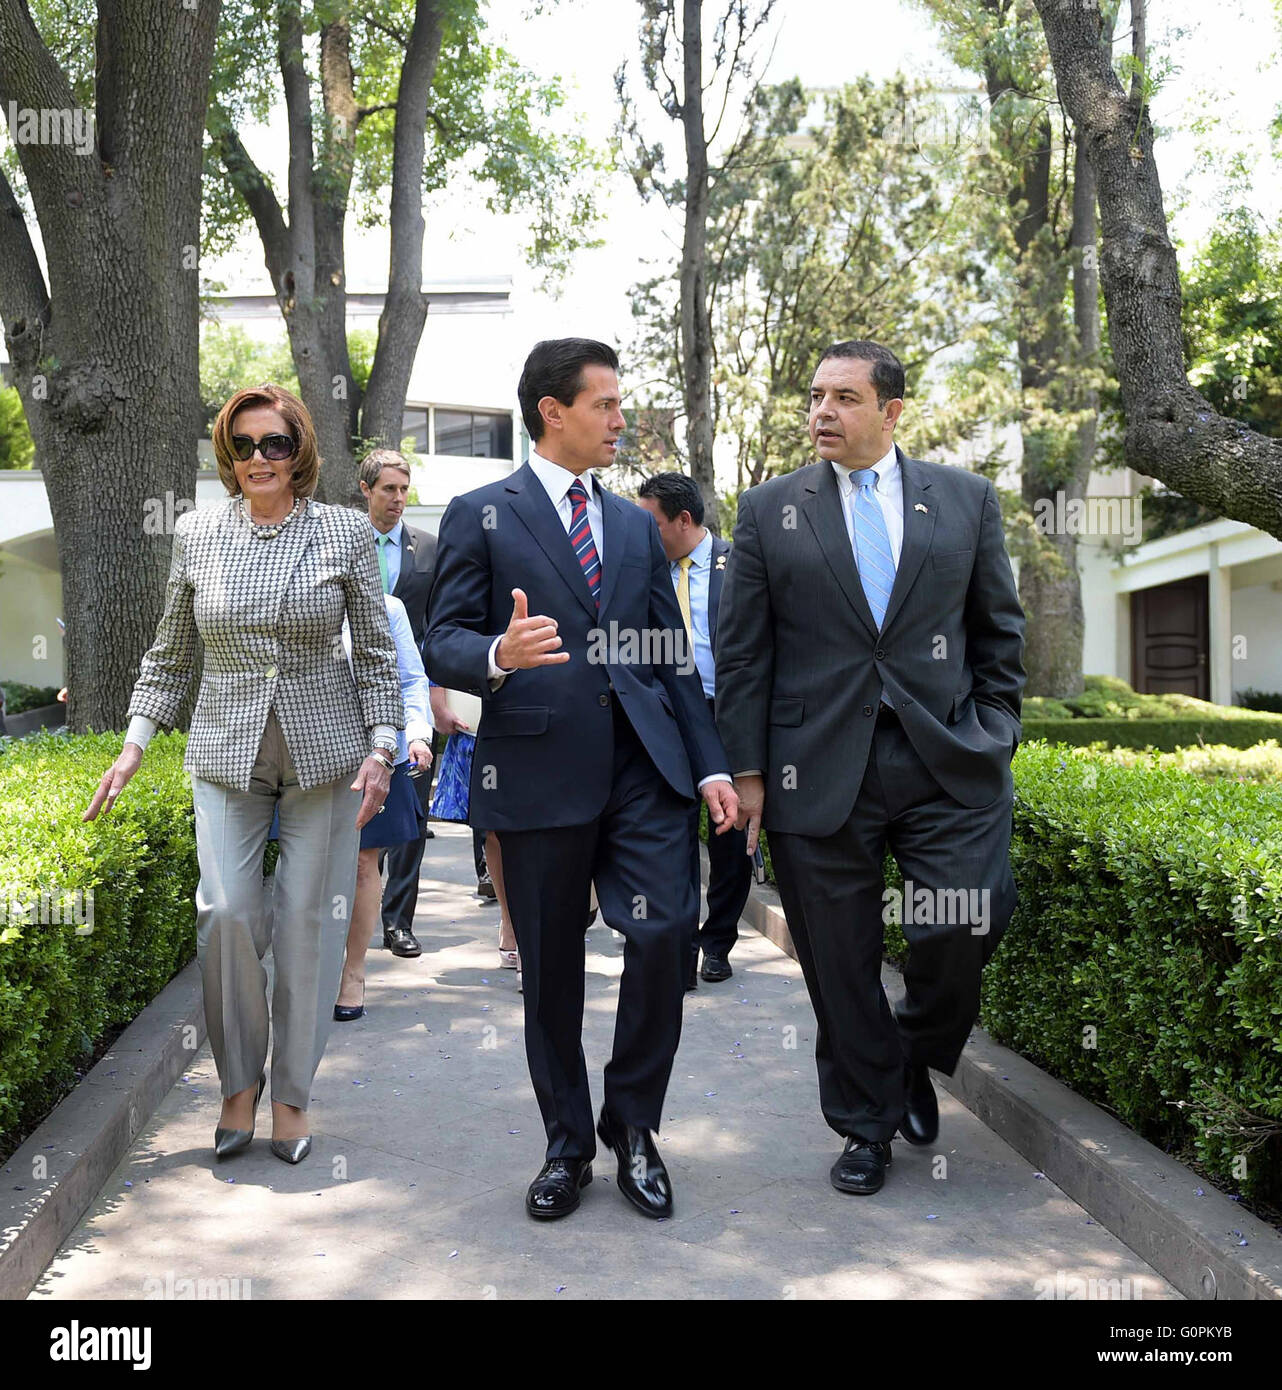 Mexico City, Mexico. 3rd May 2016. Mexican President Enrique Pena Nieto walks with U.S House Minority leader Nancy Stock Photo